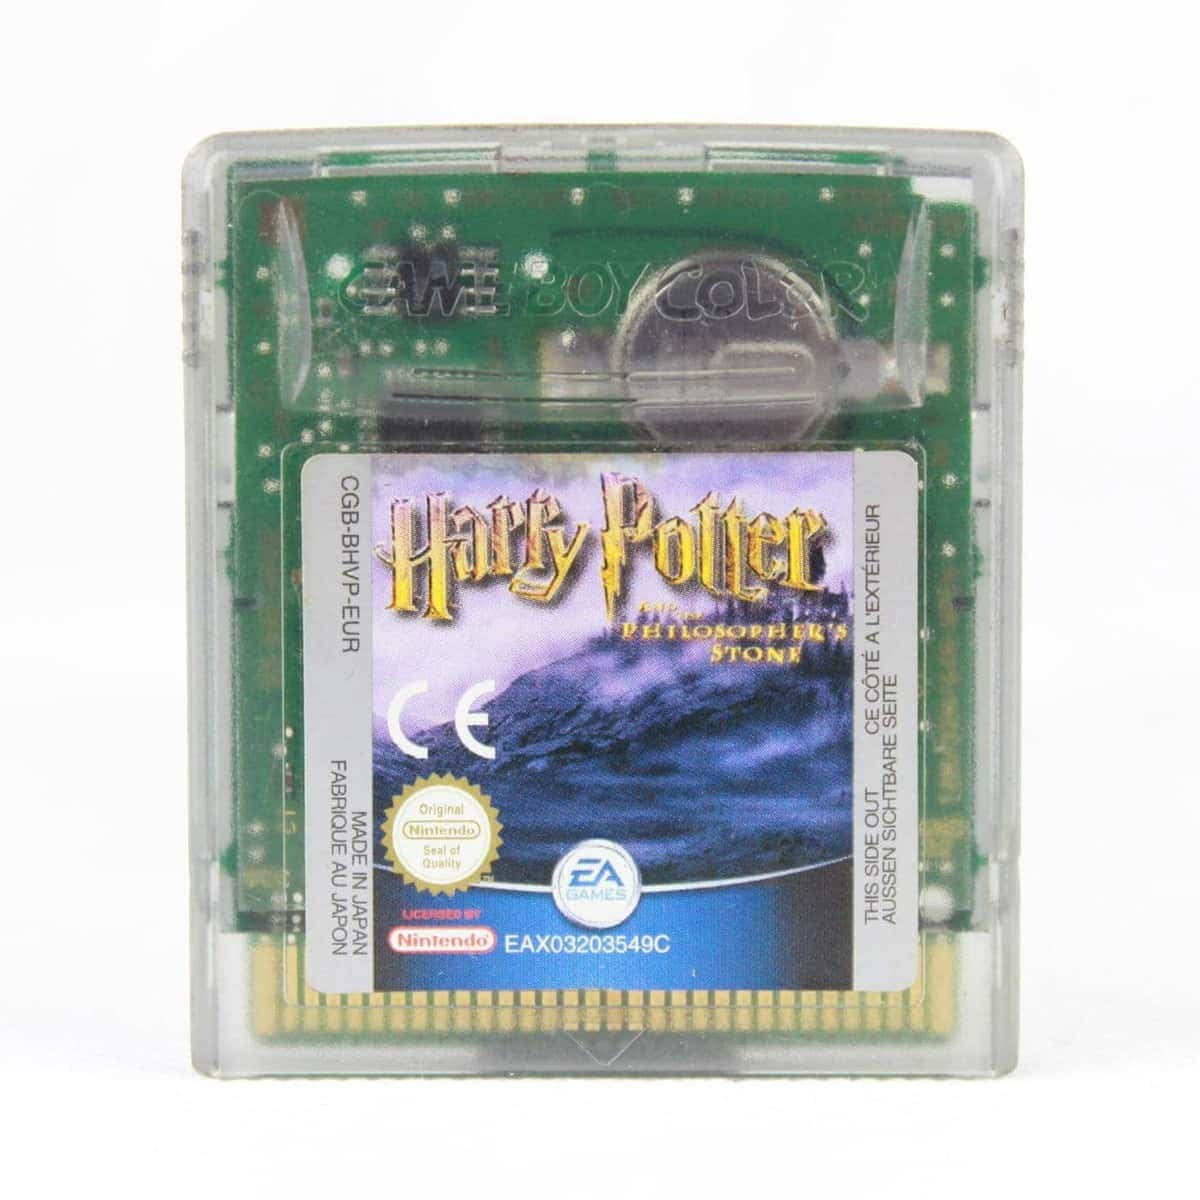 Harry Potter and the Philosopher's Stone (Game Boy Color)